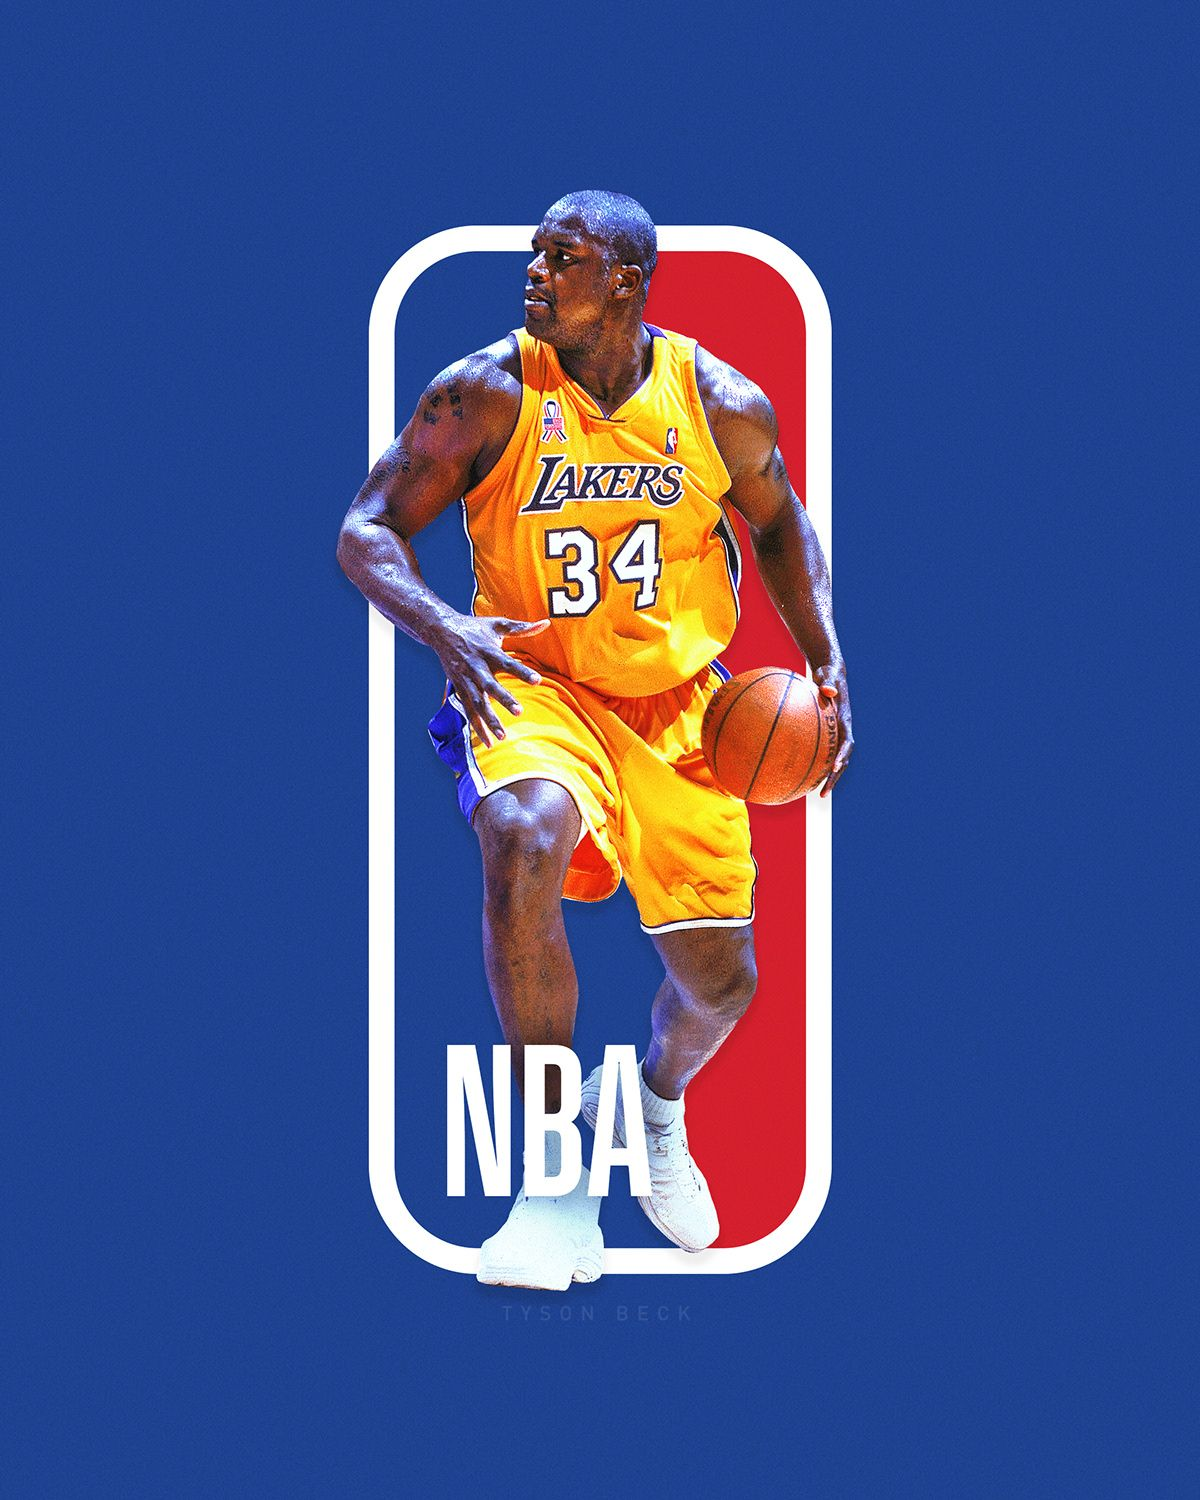 The Next NBA logo? NBA Logoman Series on Behance バスケnba